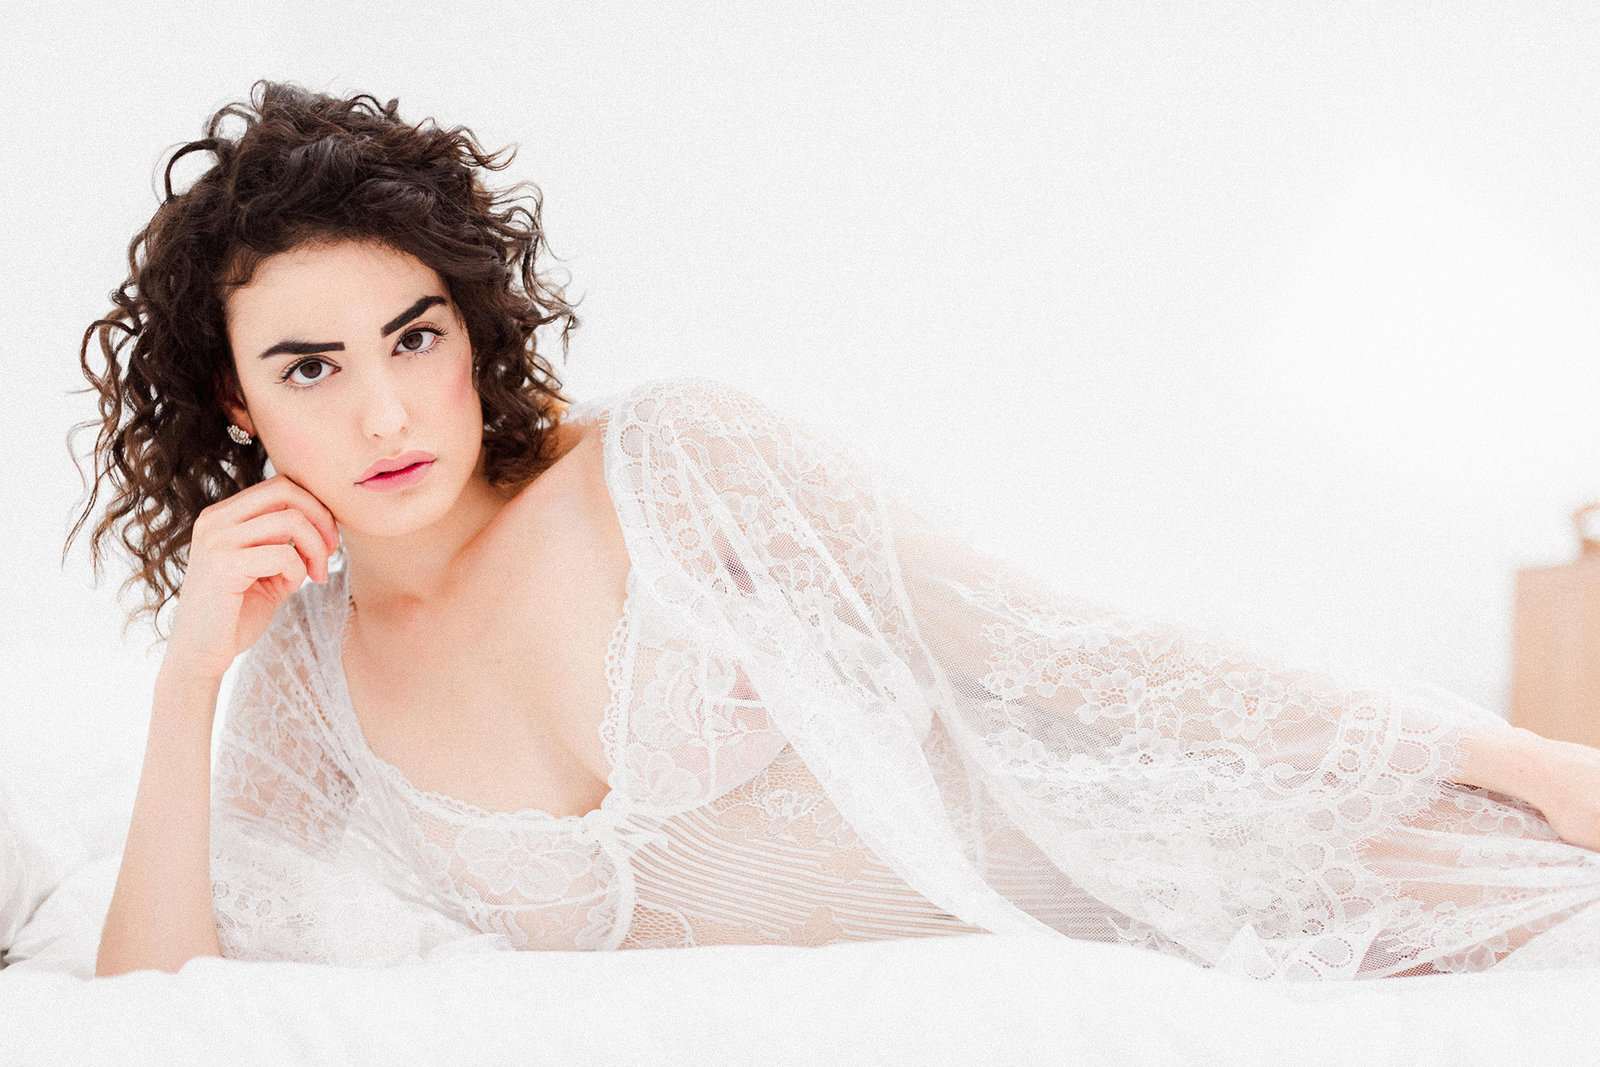 bride in lace white lingerie laying on bed